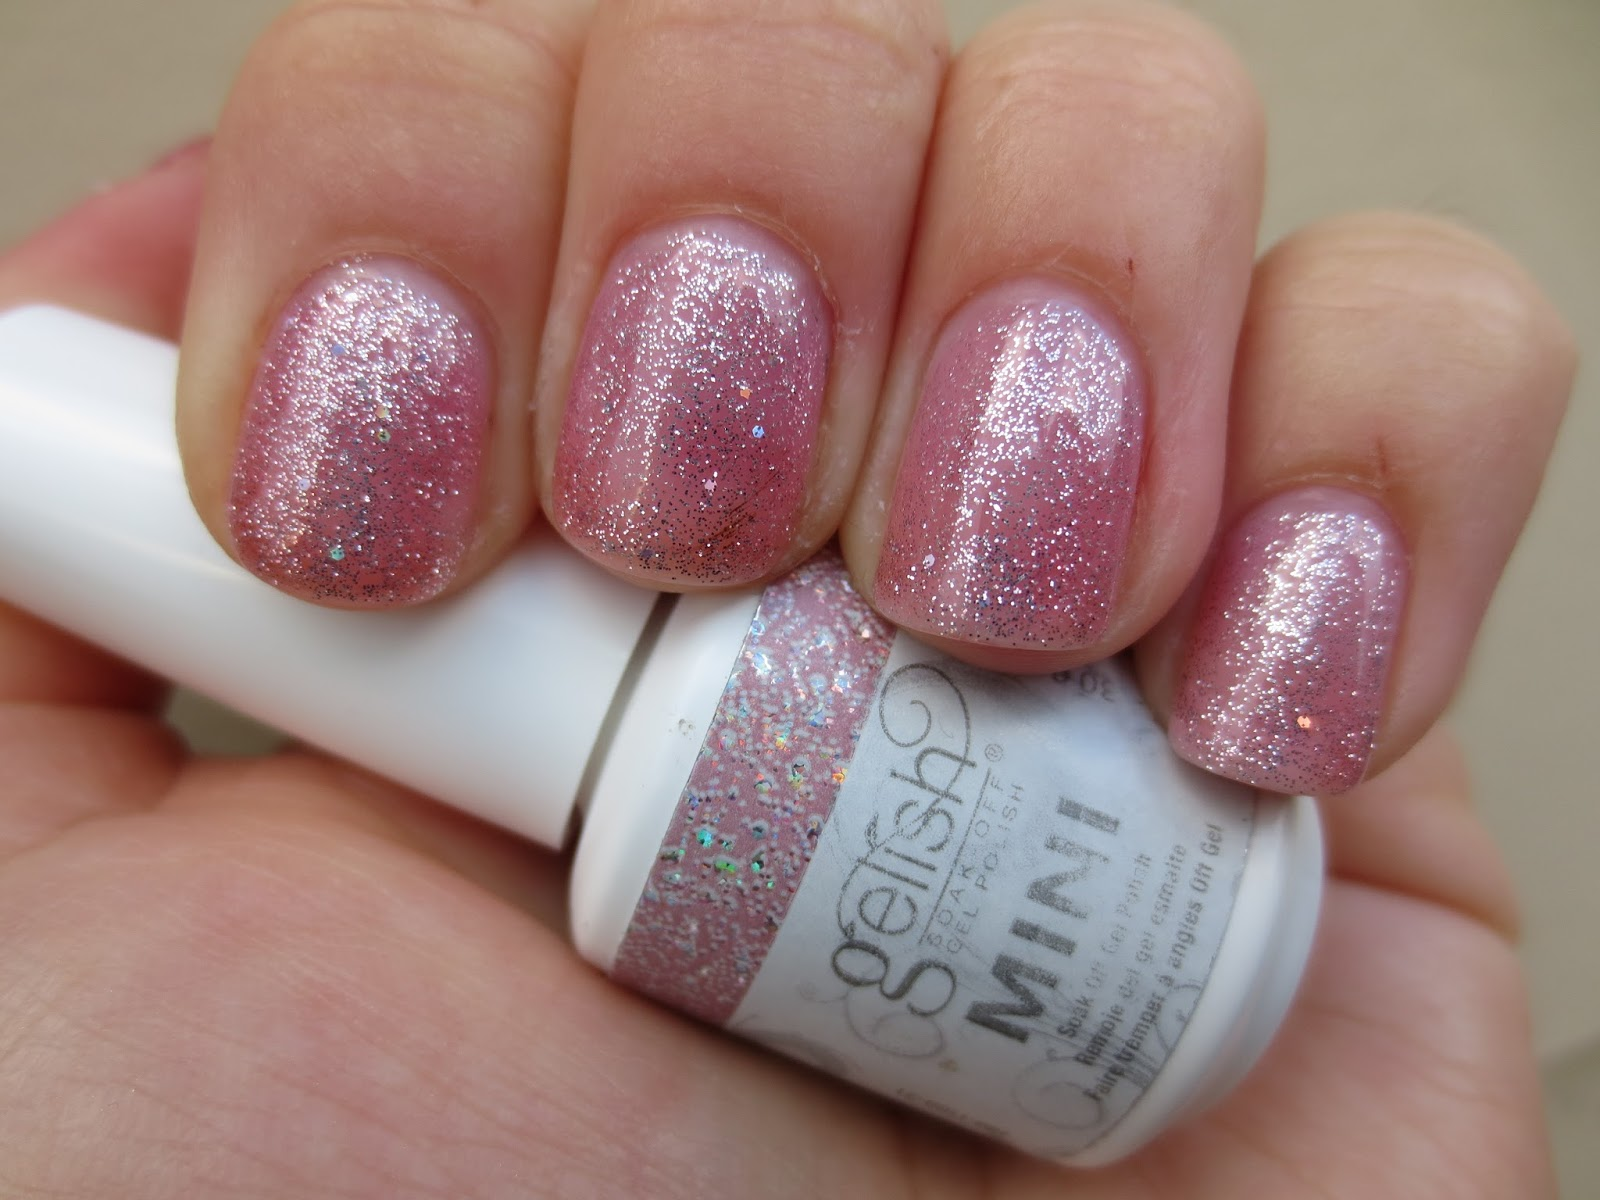 Polish & Puppies: SOG: Gelish June Bride